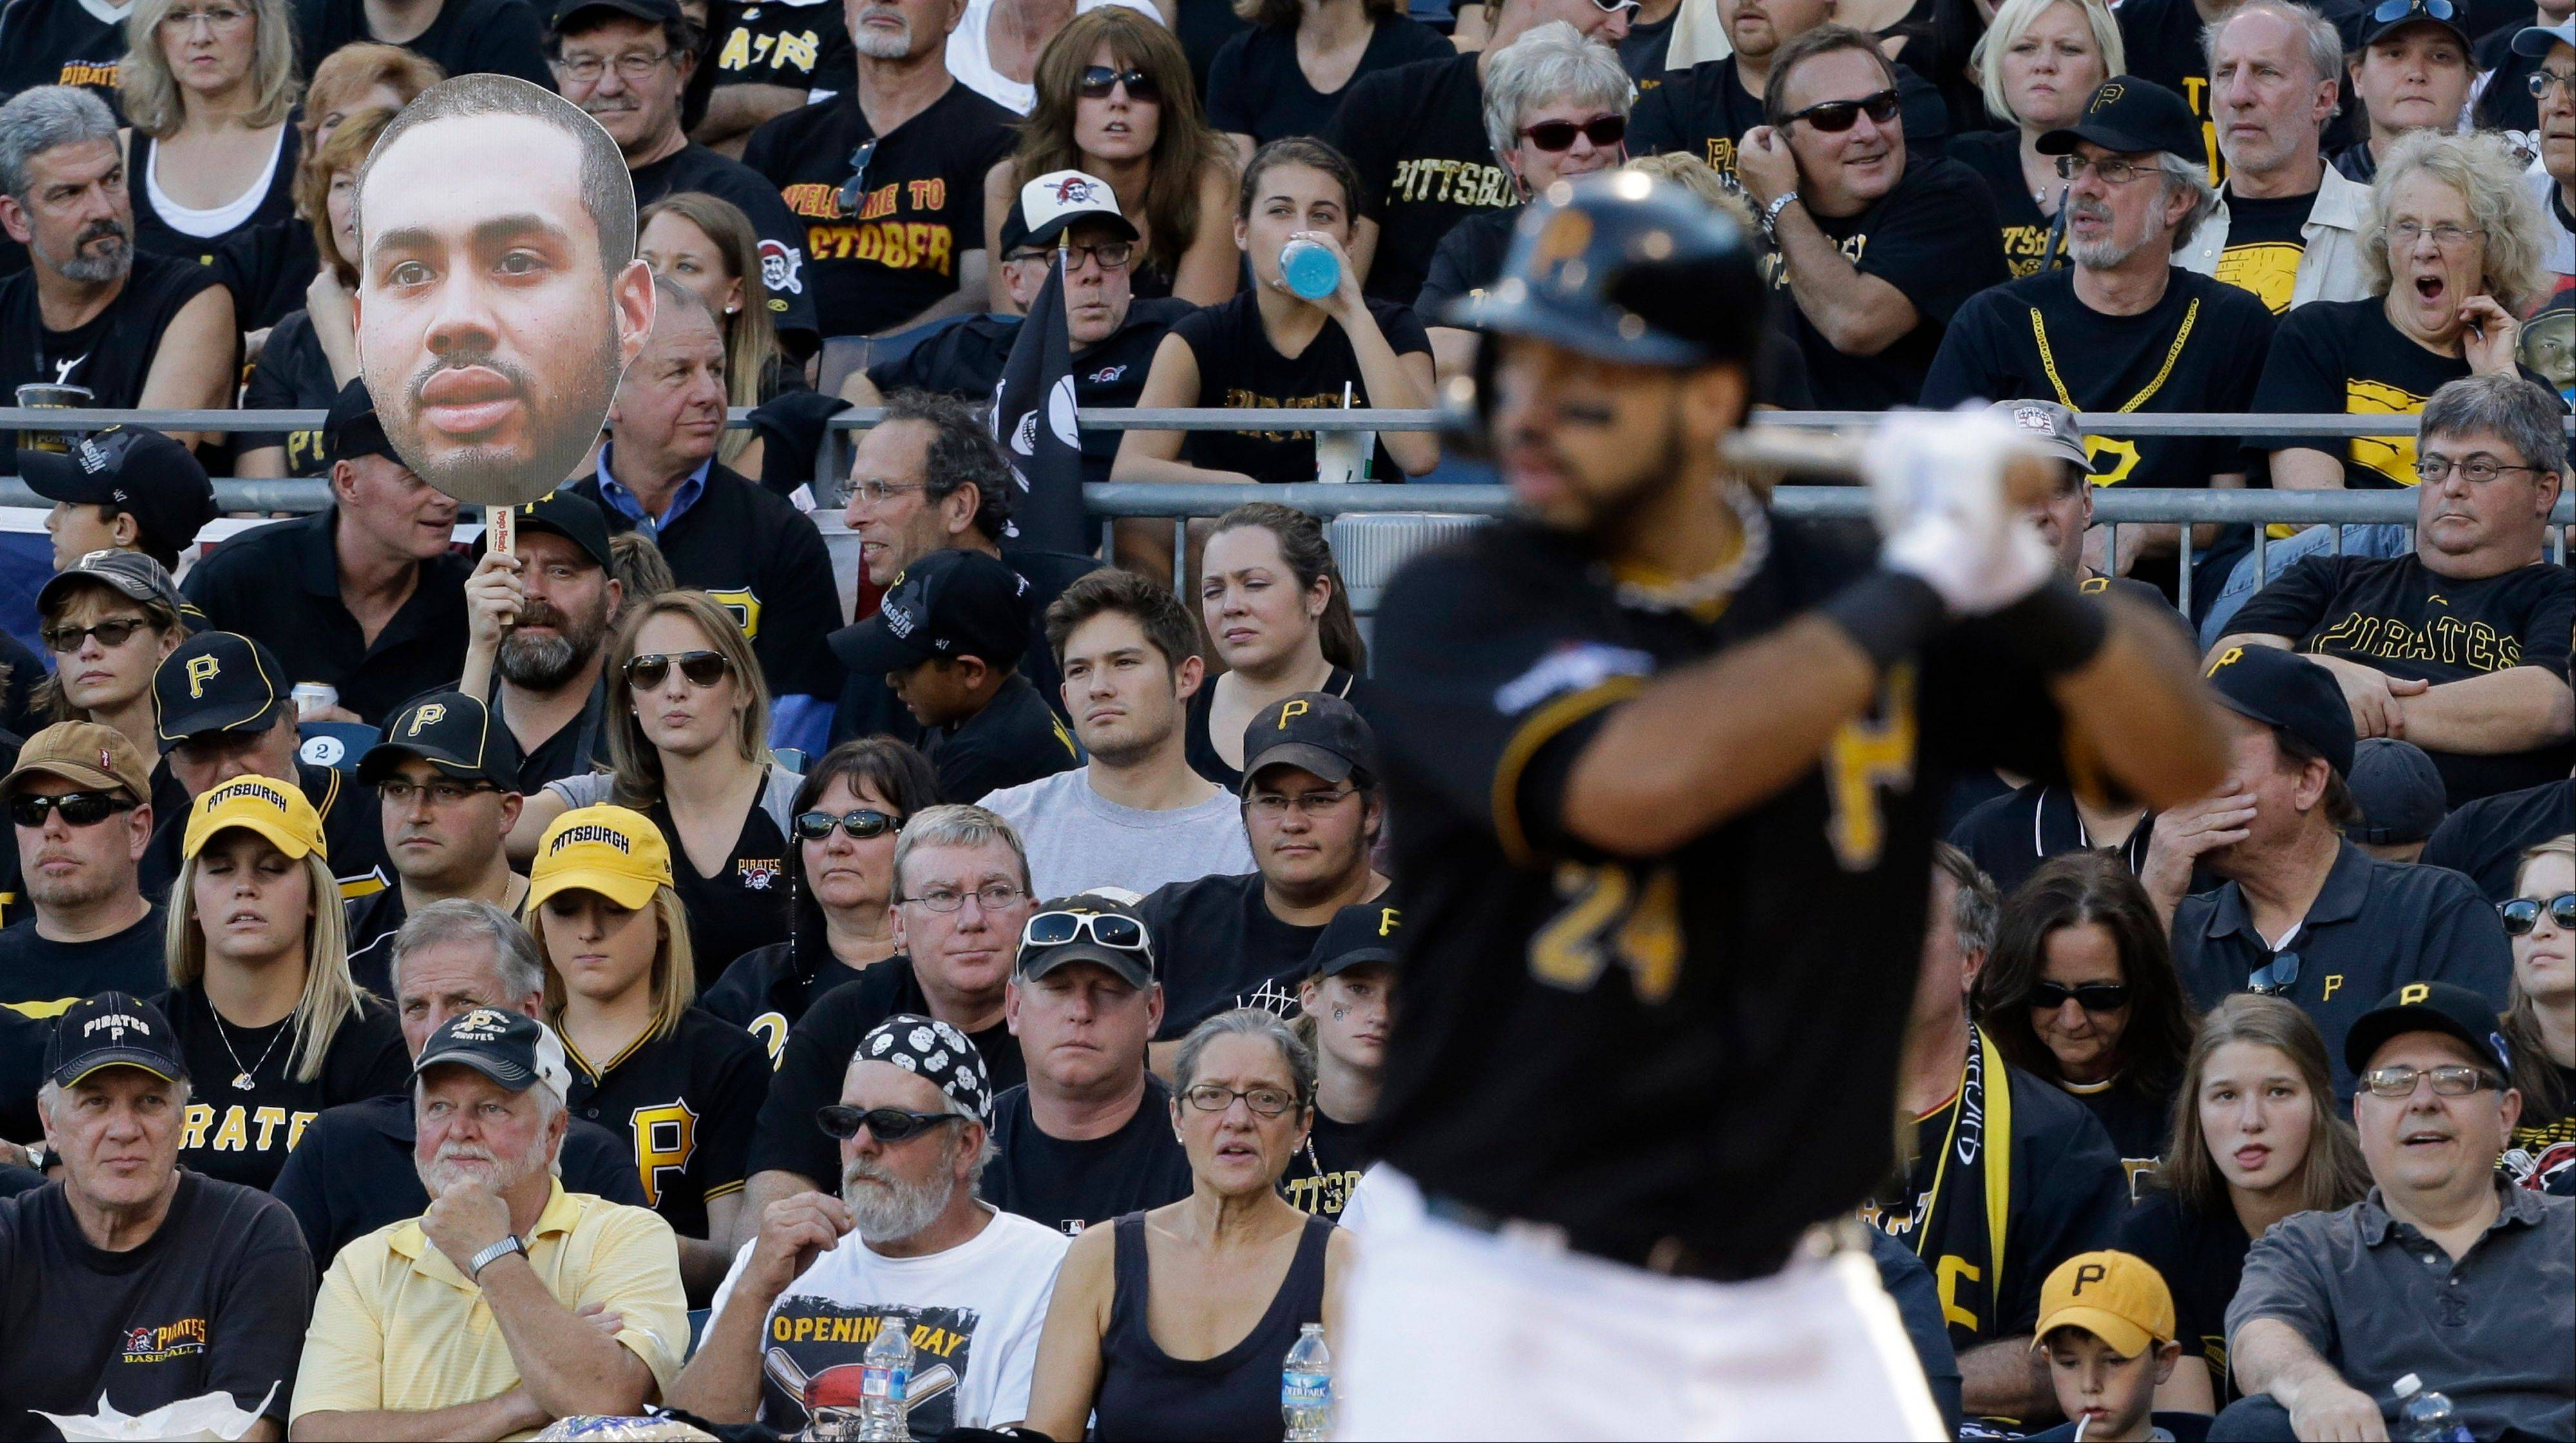 A fan holds a giant poster photo of Pittsburgh Pirates' Pedro Alvarez, left, as he bats in the fourth inning of Game 3 of a National League division baseball series against the St. Louis Cardinals on Sunday, Oct. 6, 2013 in Pittsburgh.